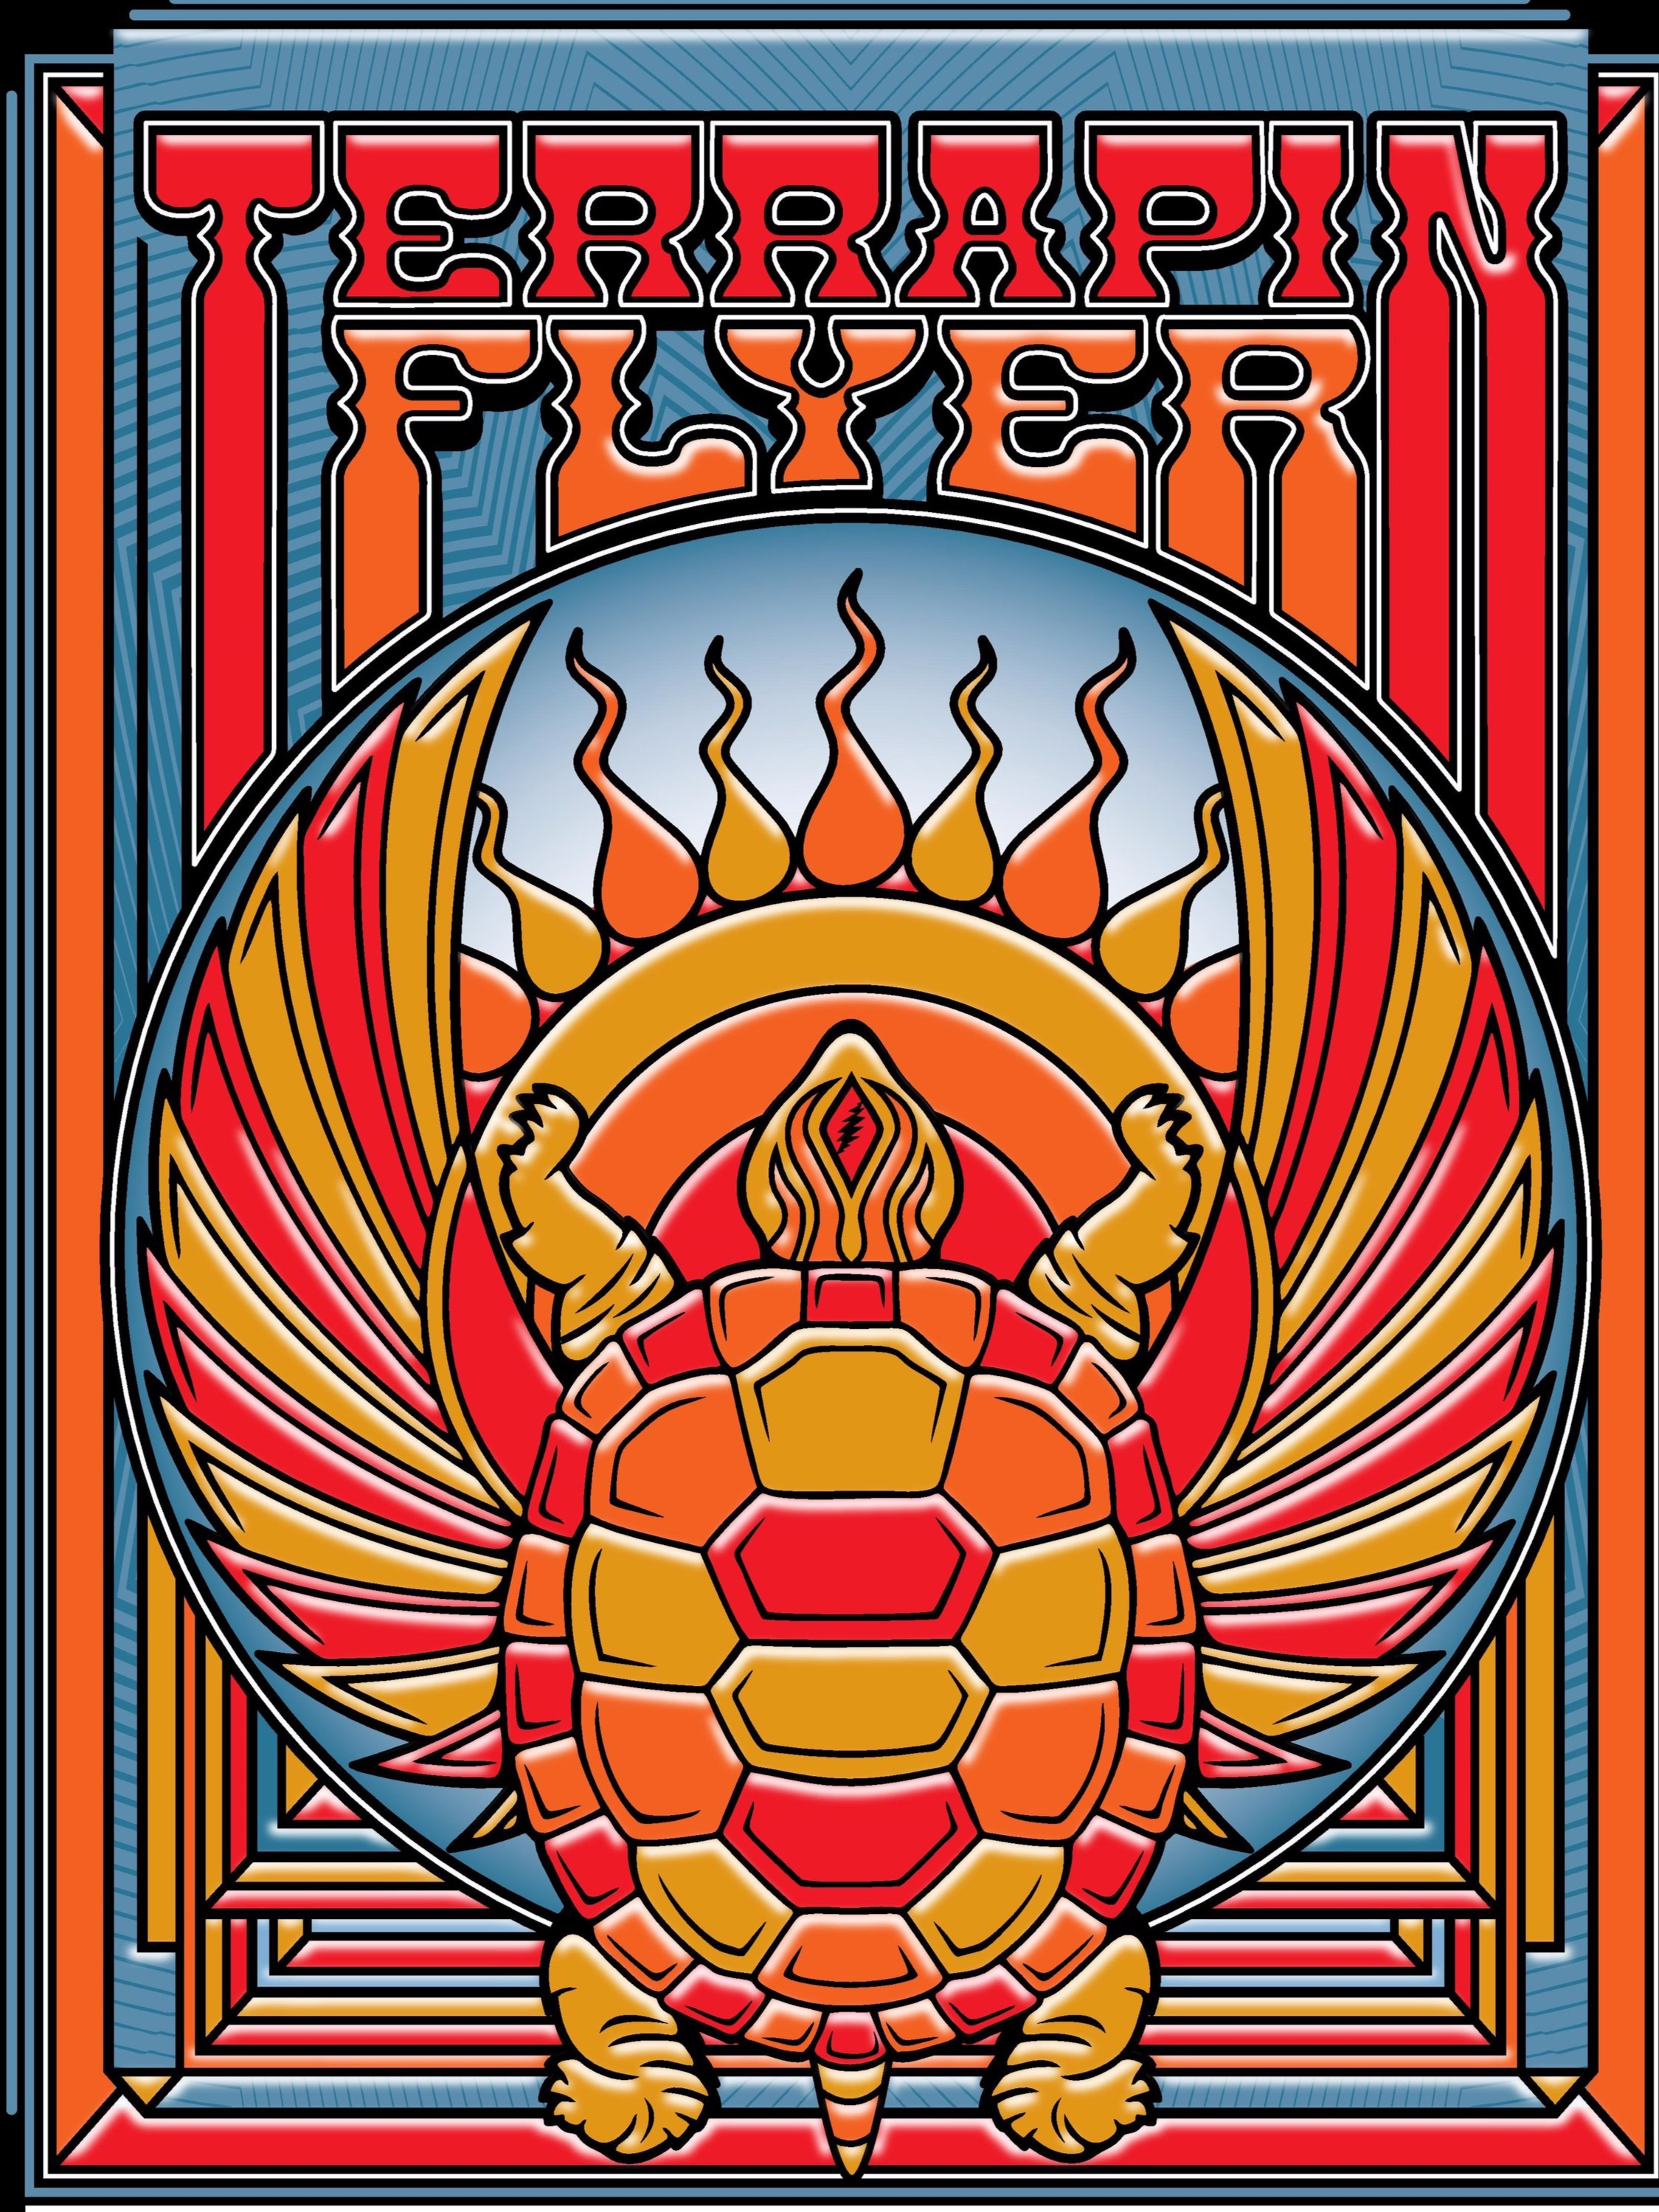 terrapin+flyer+merch+poster+%5BConverted%5D.jpg